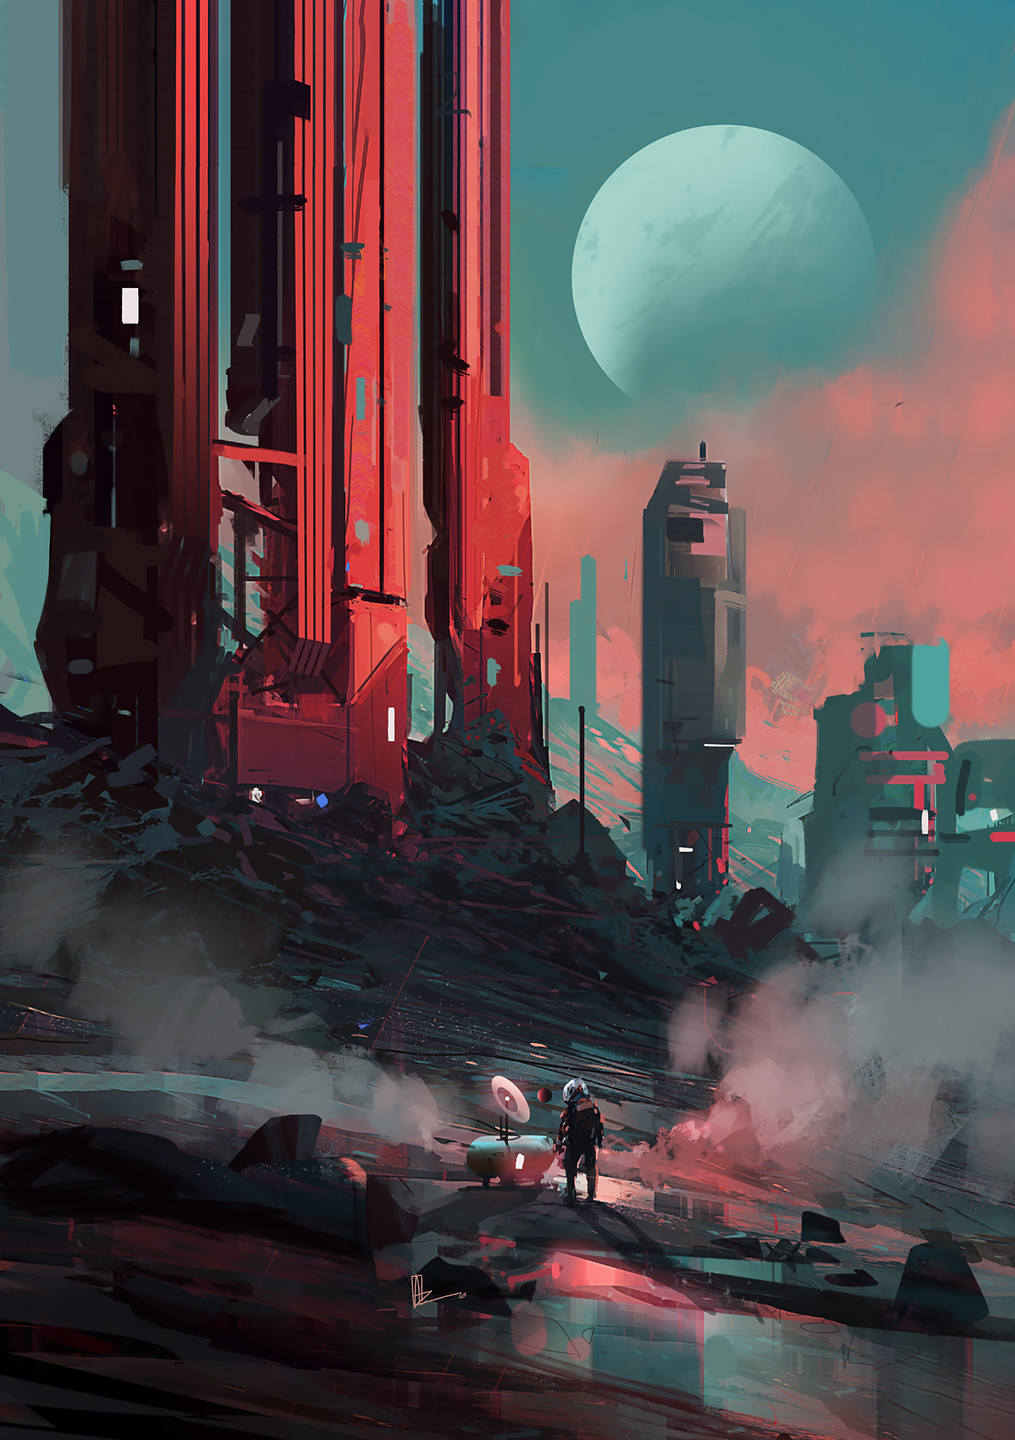 Images: Pillars And Troopers - Sci-Fi Art From Amir Zand